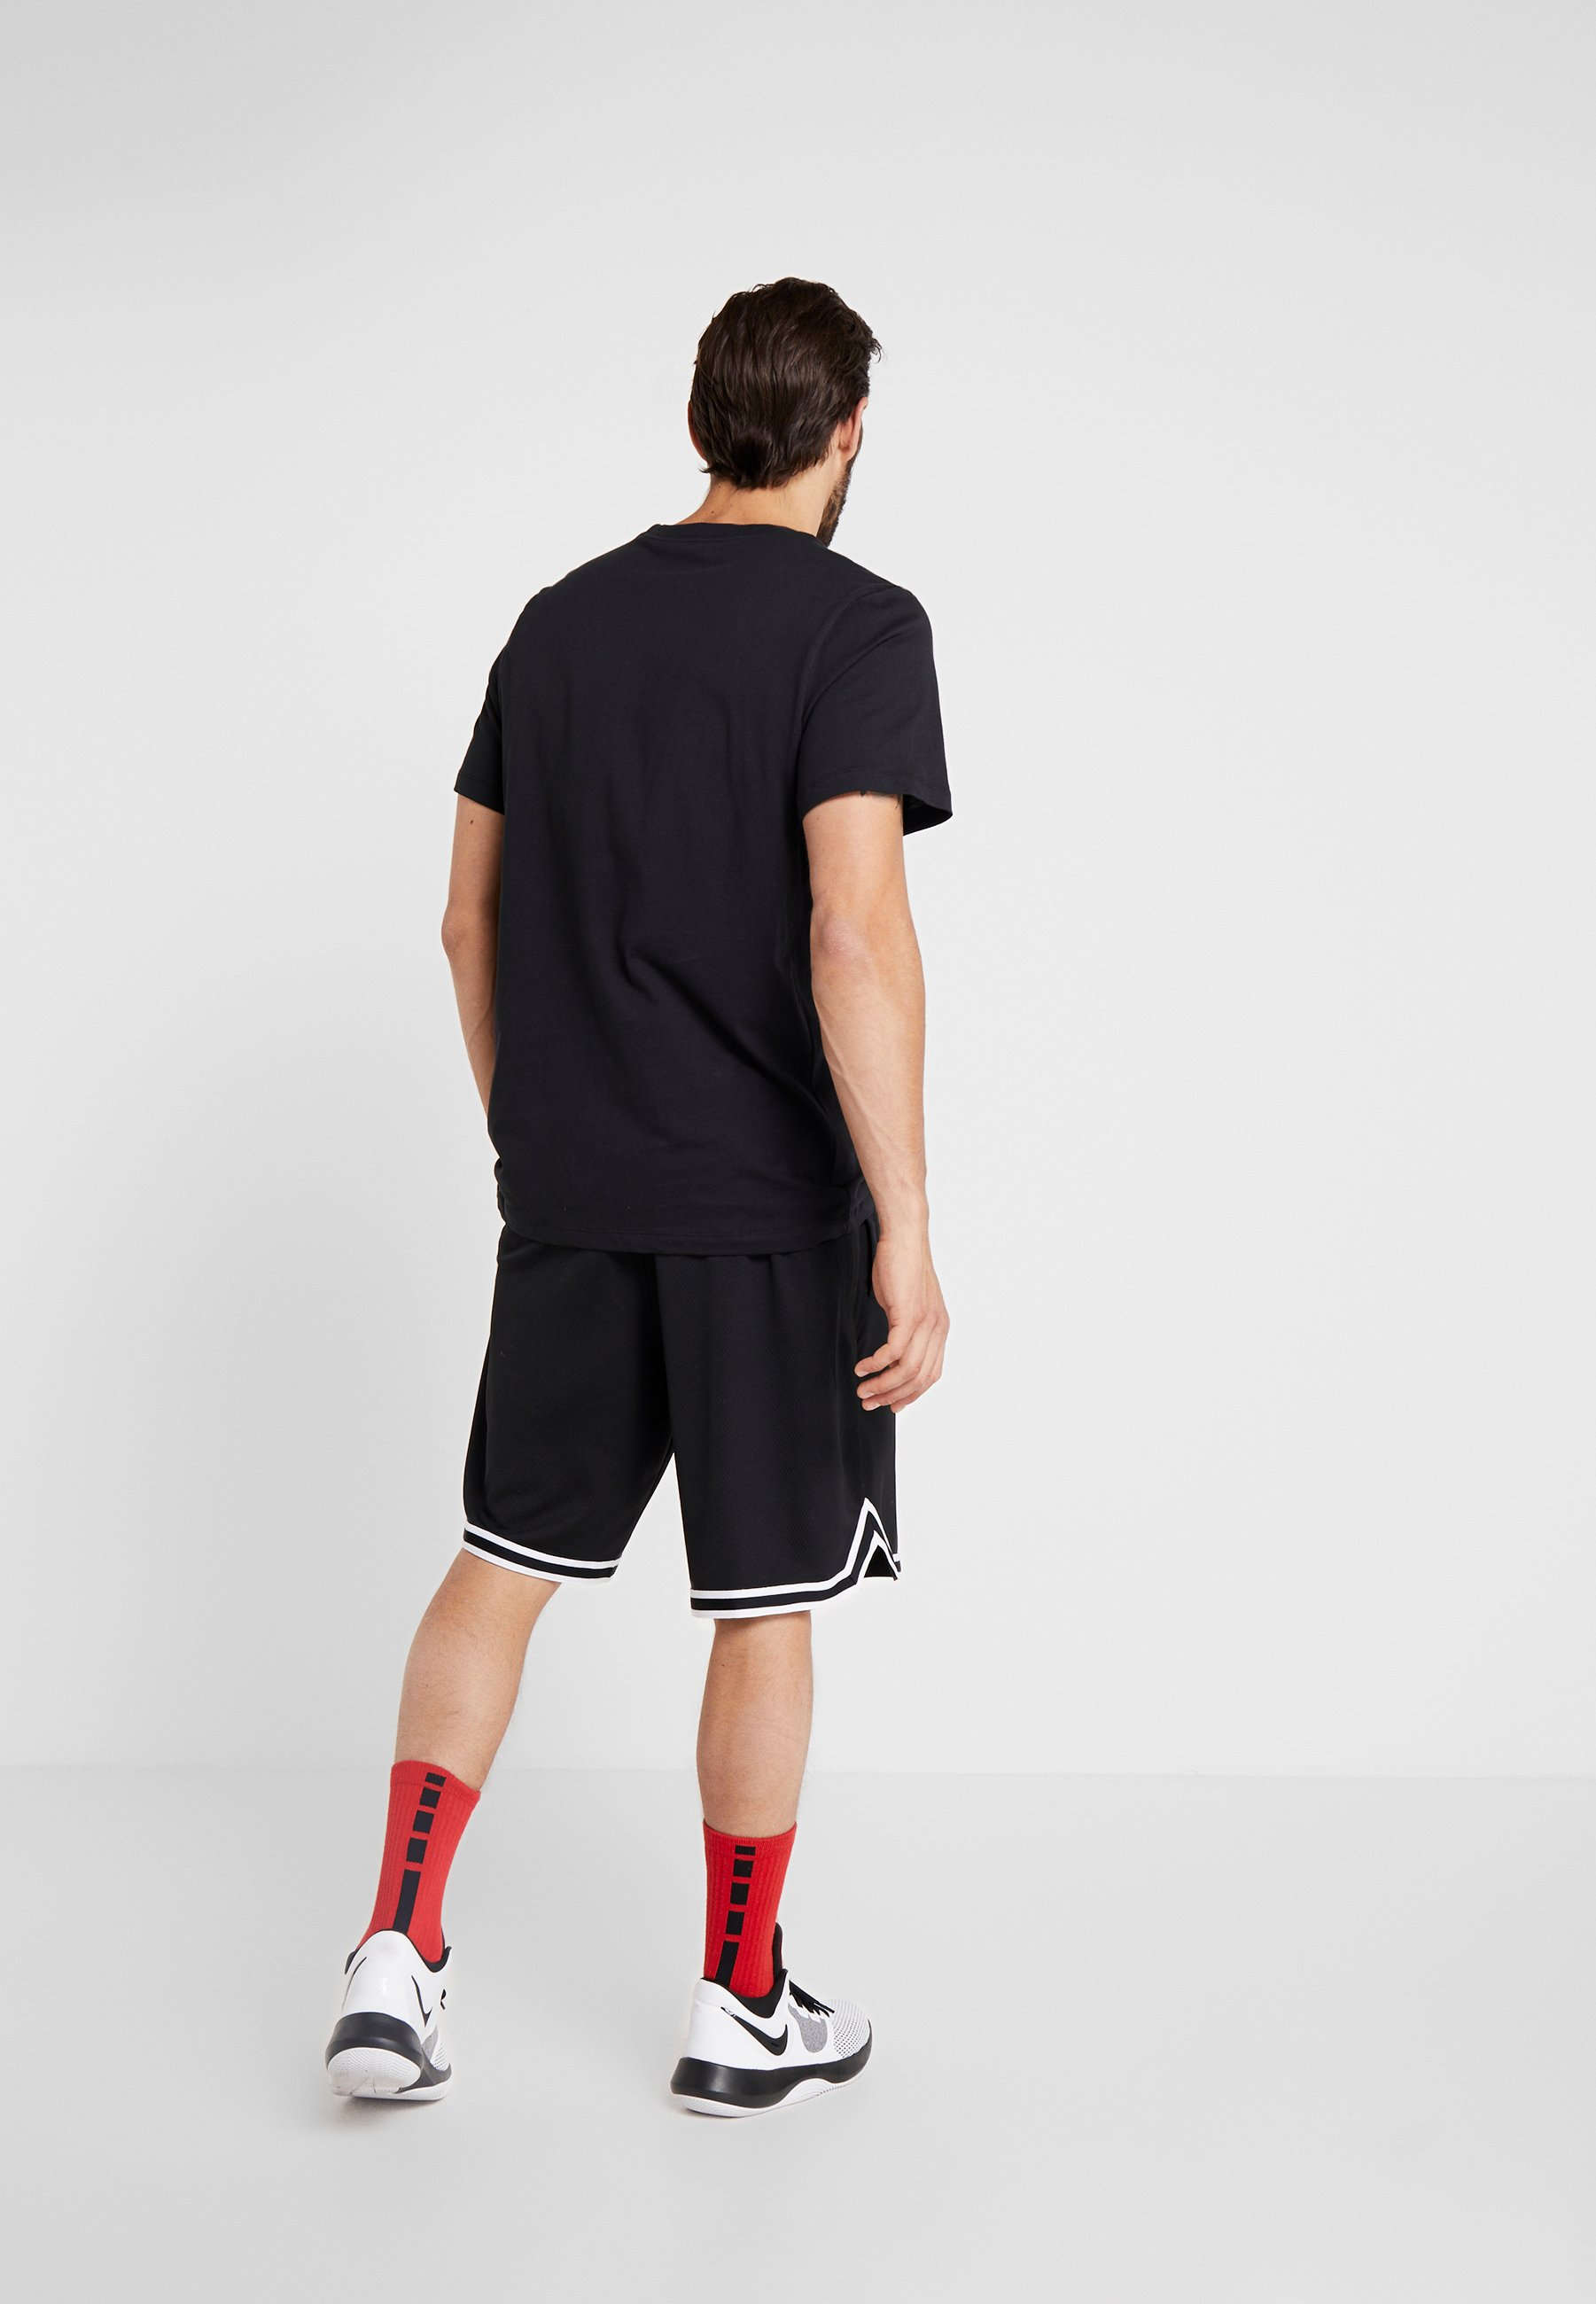 Imprimé Performance TeeT Nike shirt Black byvY7f6g